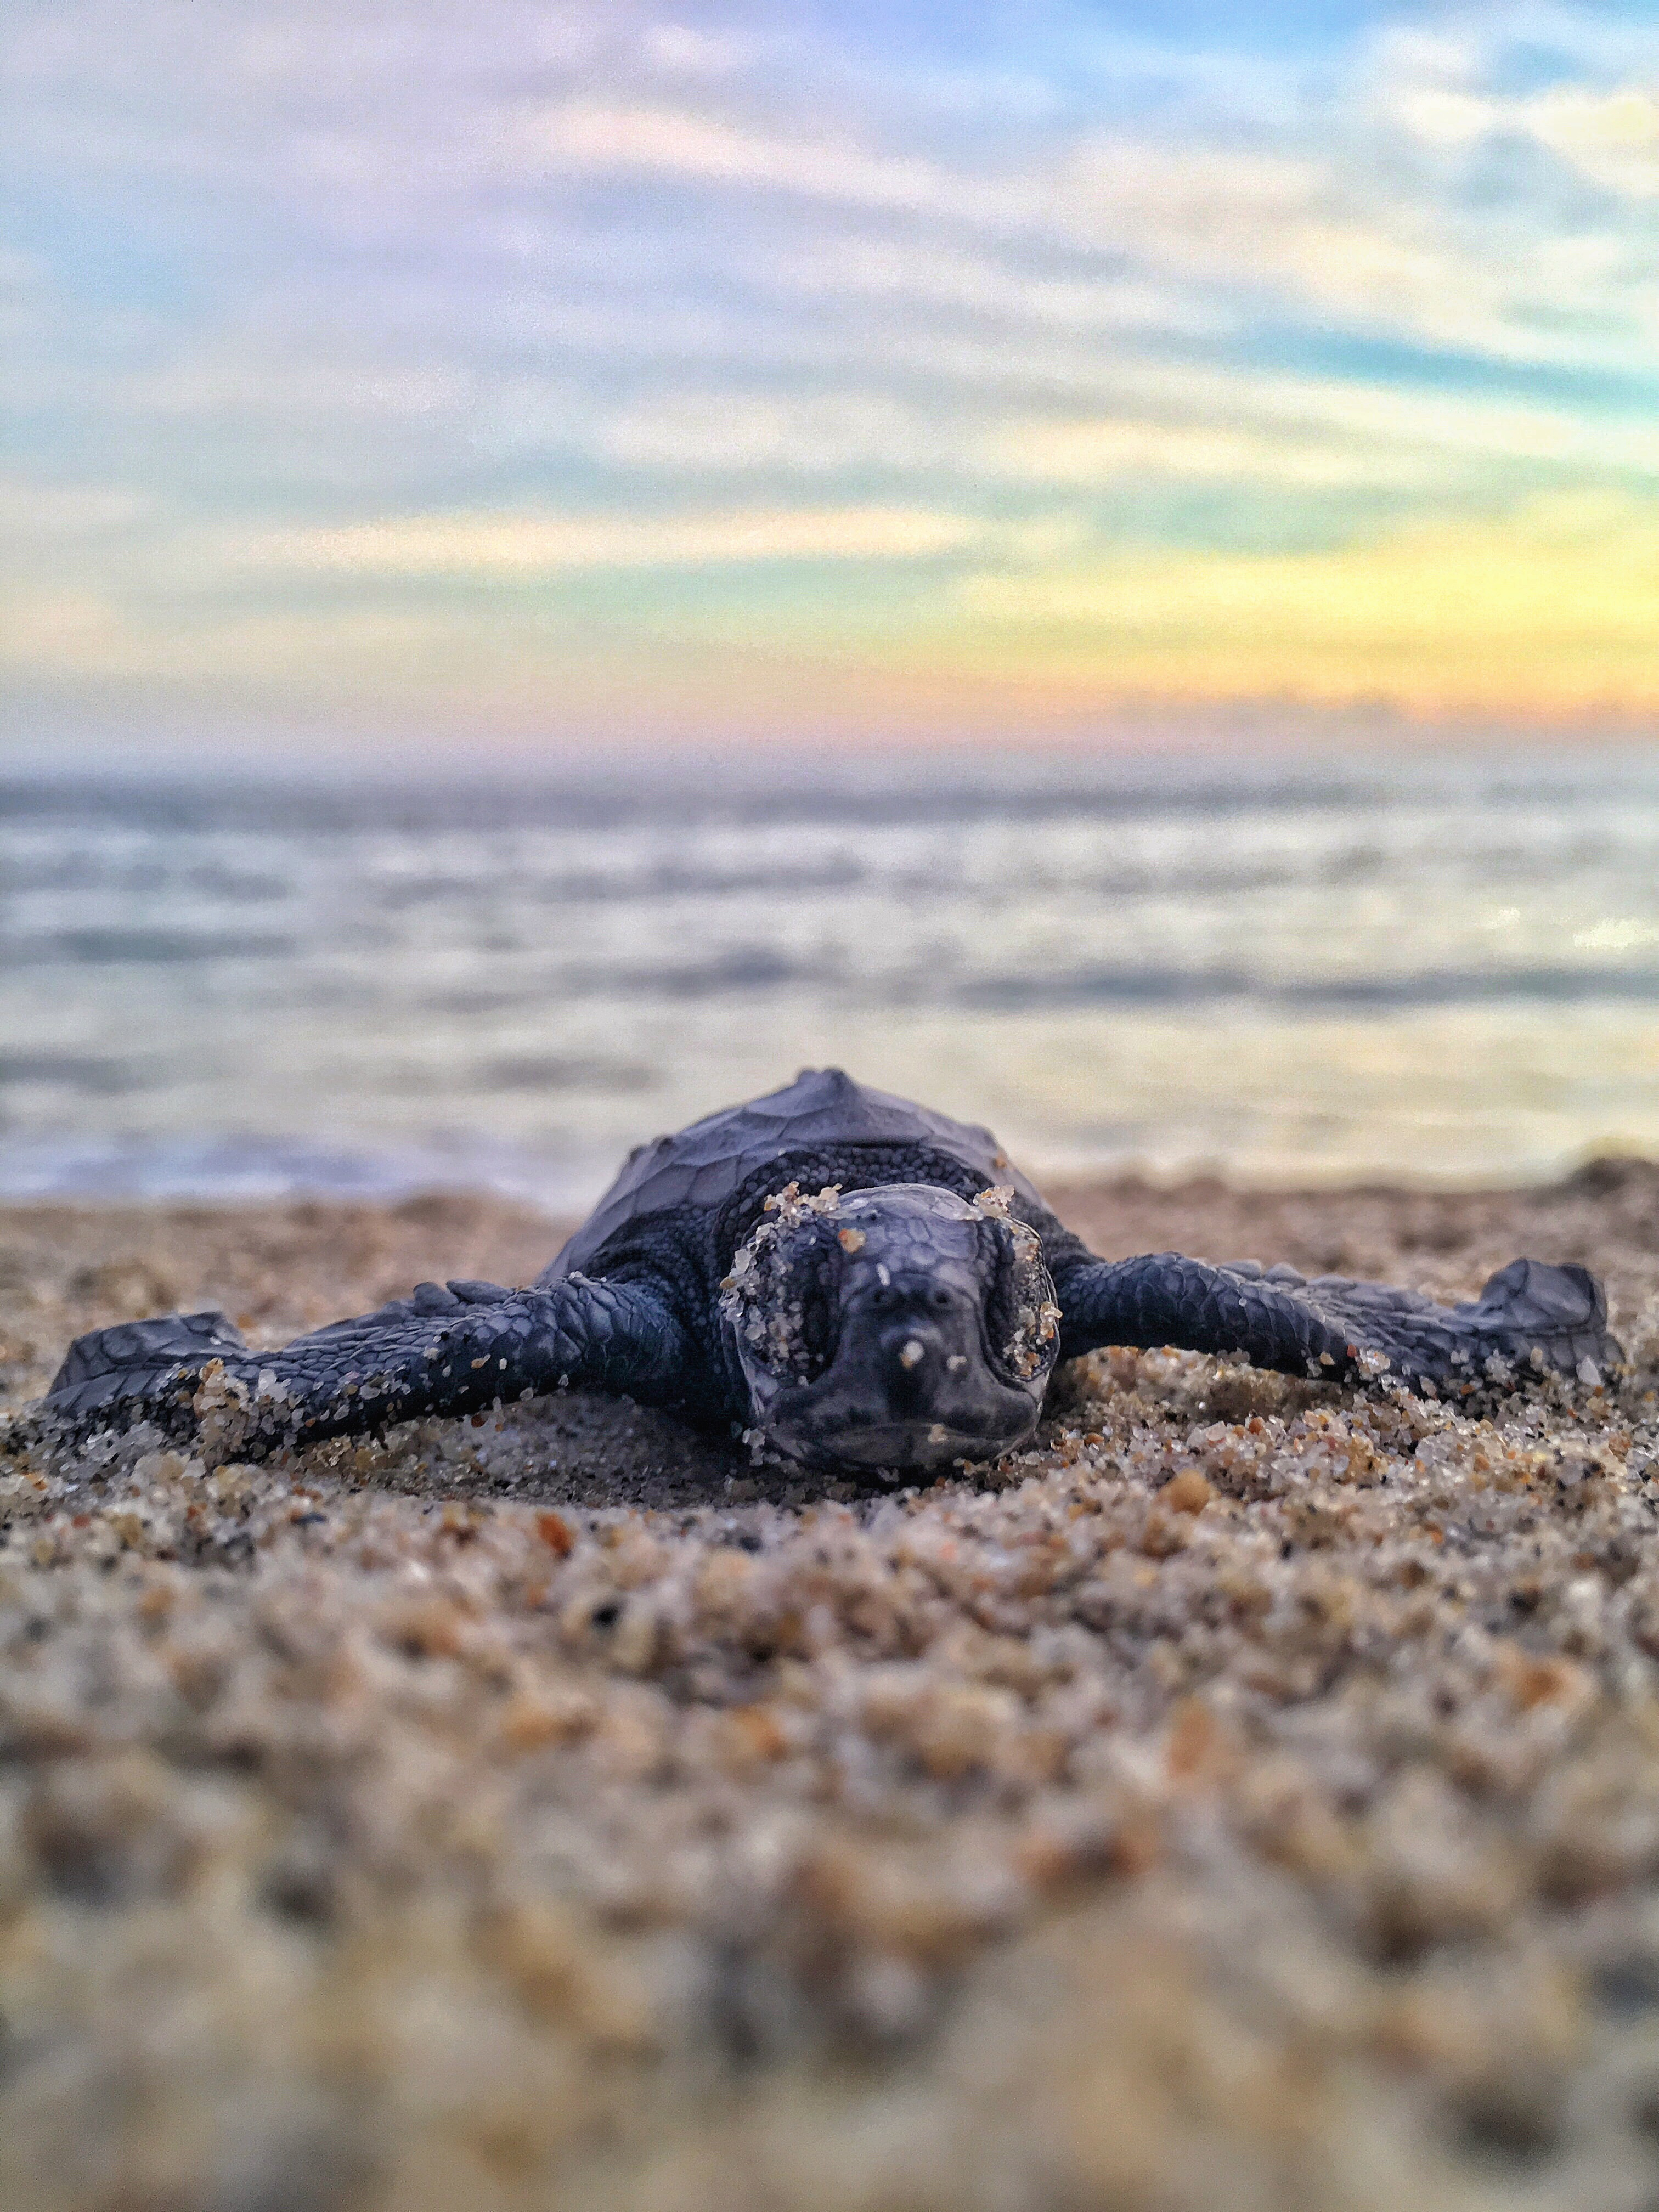 Sea Turtles Wallpaper 100 Sea Turtle Pictures Download Free Images On Unsplash